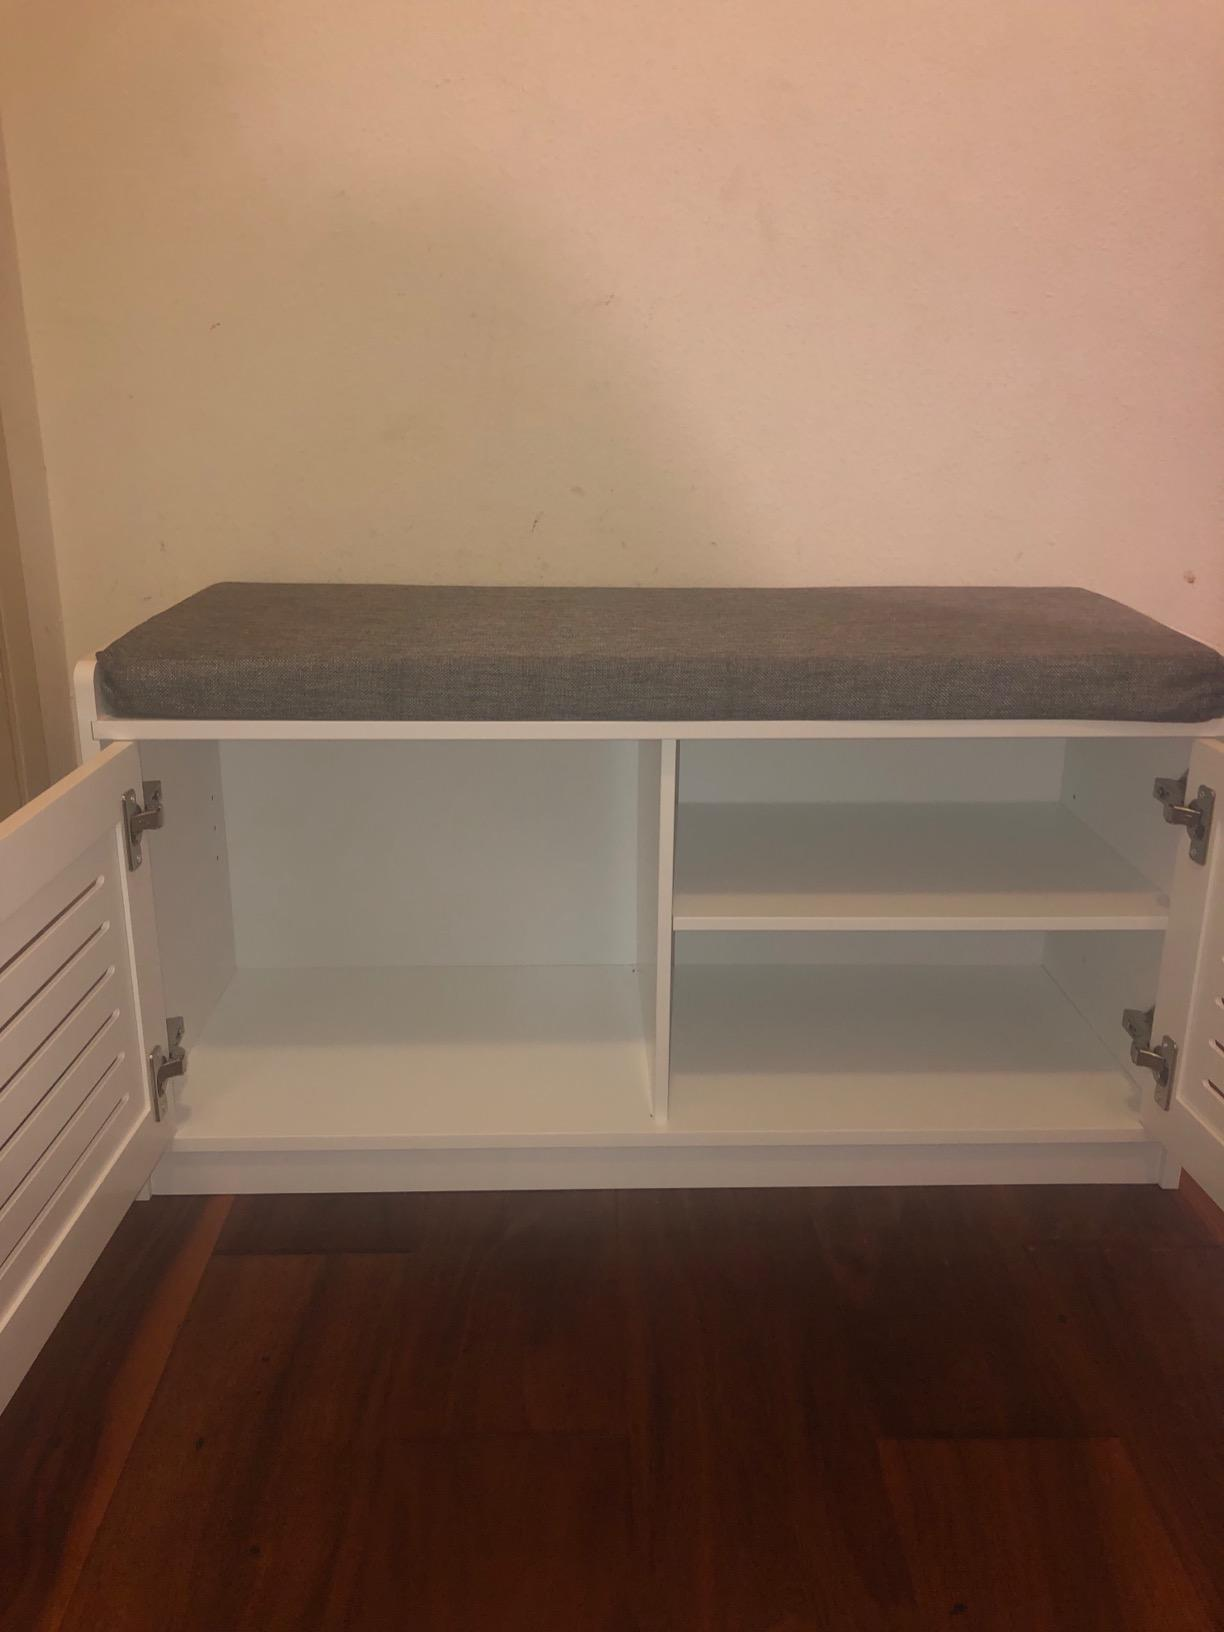 Excellent Sturdis Shoe Storage Bench With Cushion Ocoug Best Dining Table And Chair Ideas Images Ocougorg